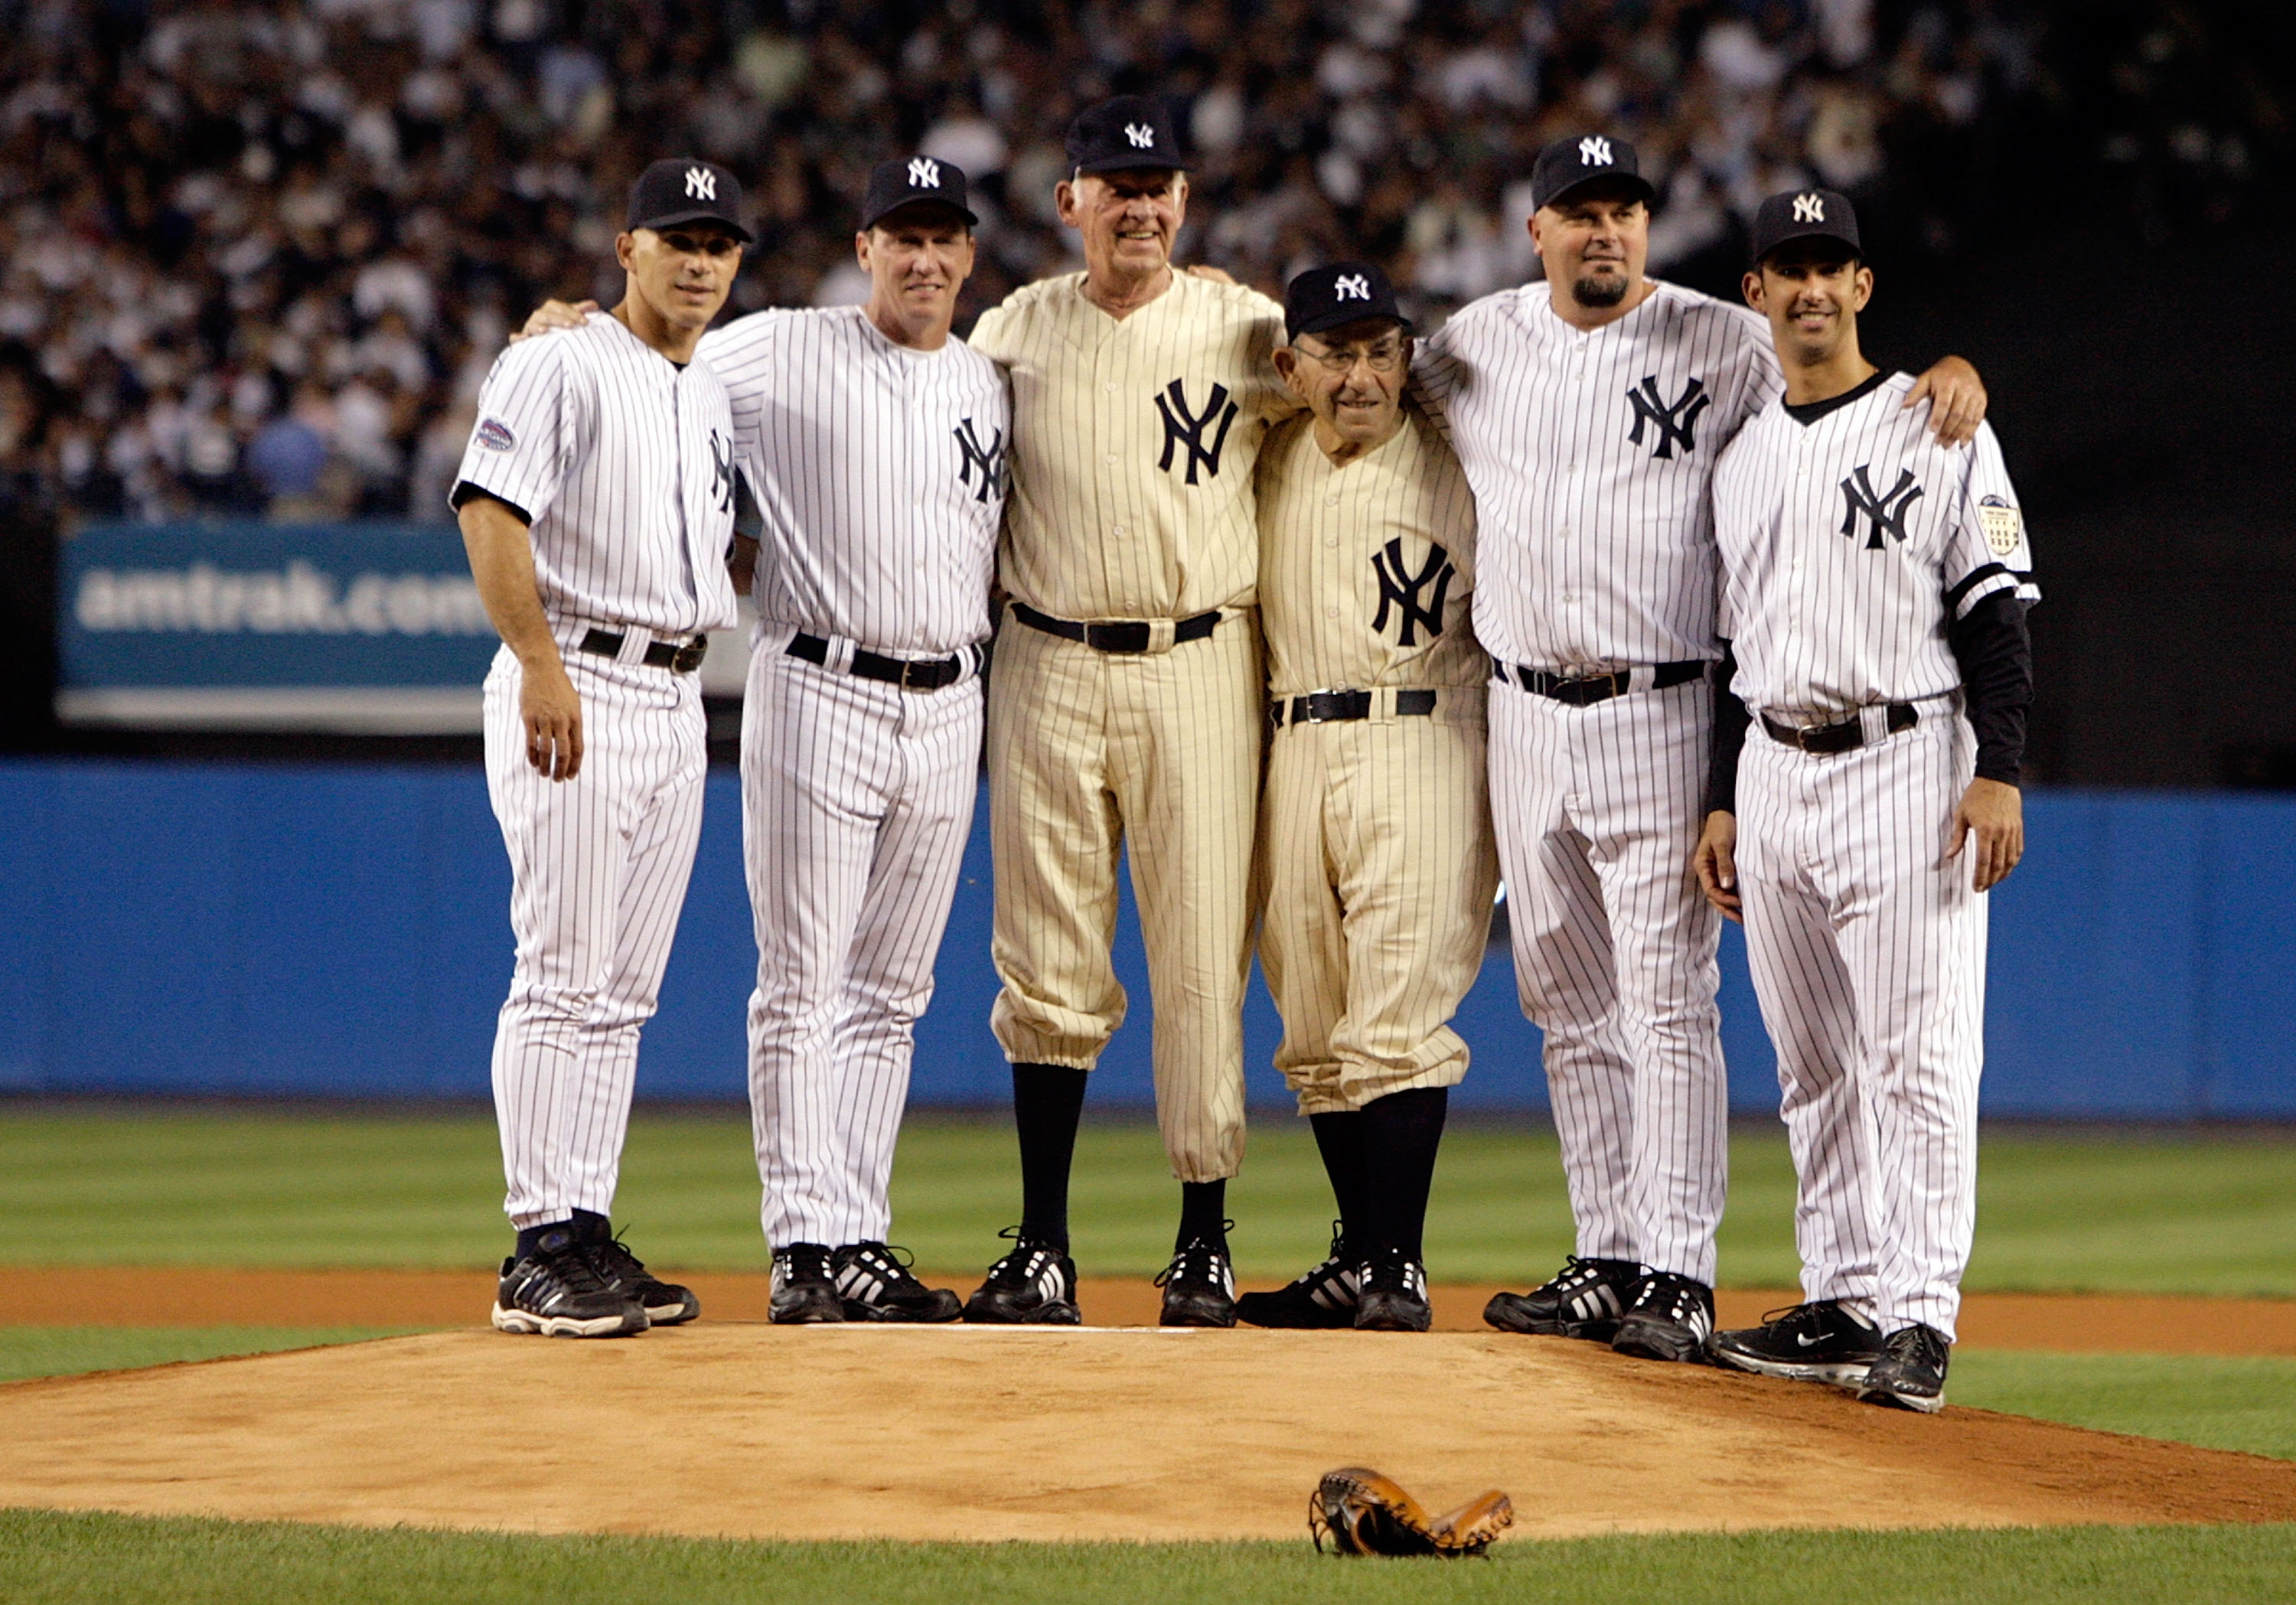 NEW YORK - SEPTEMBER 21:  (L-R) Joe Girardi, David Cone, Don Larsen, Yogi Berra, David Wells and Jorge Posada stand on the mound during a pregame ceremony prior to the start of the last regular season game at Yankee Stadium between the Baltimore Orioles a